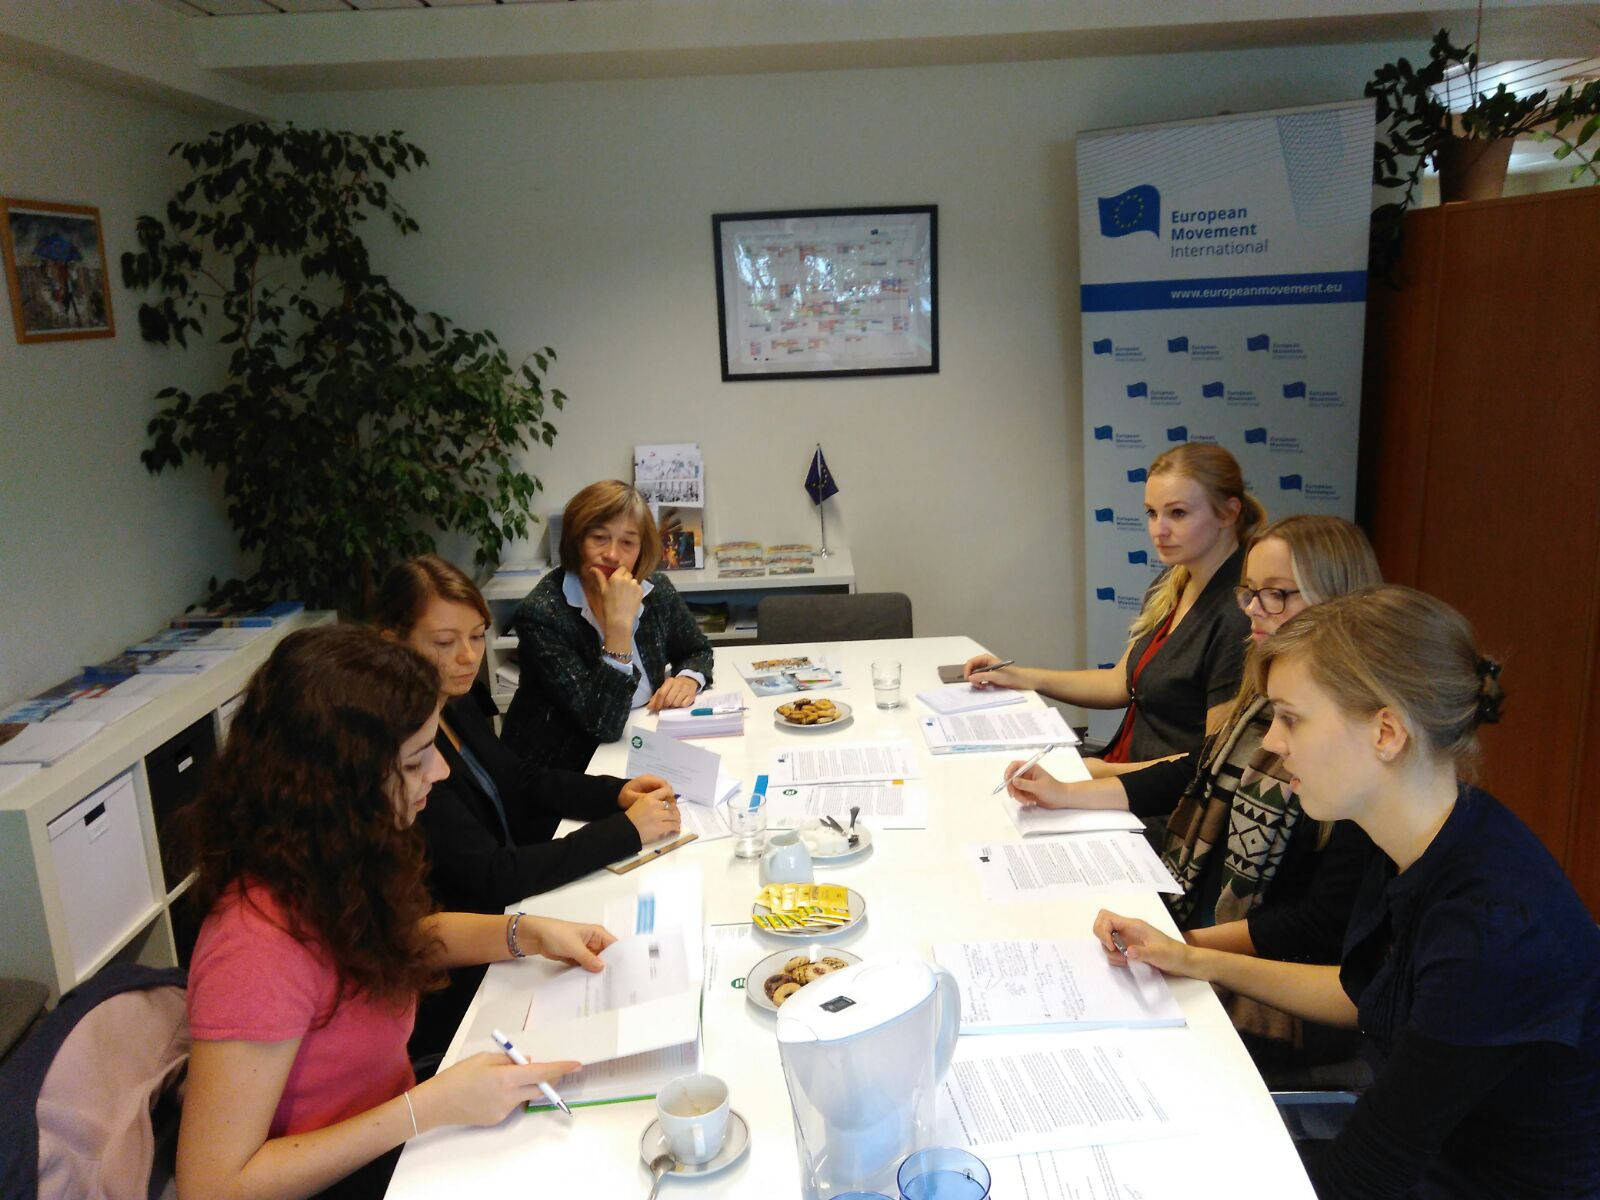 European Movement Political Committee meeting on Skills and Youth with Ms. Susan Bird